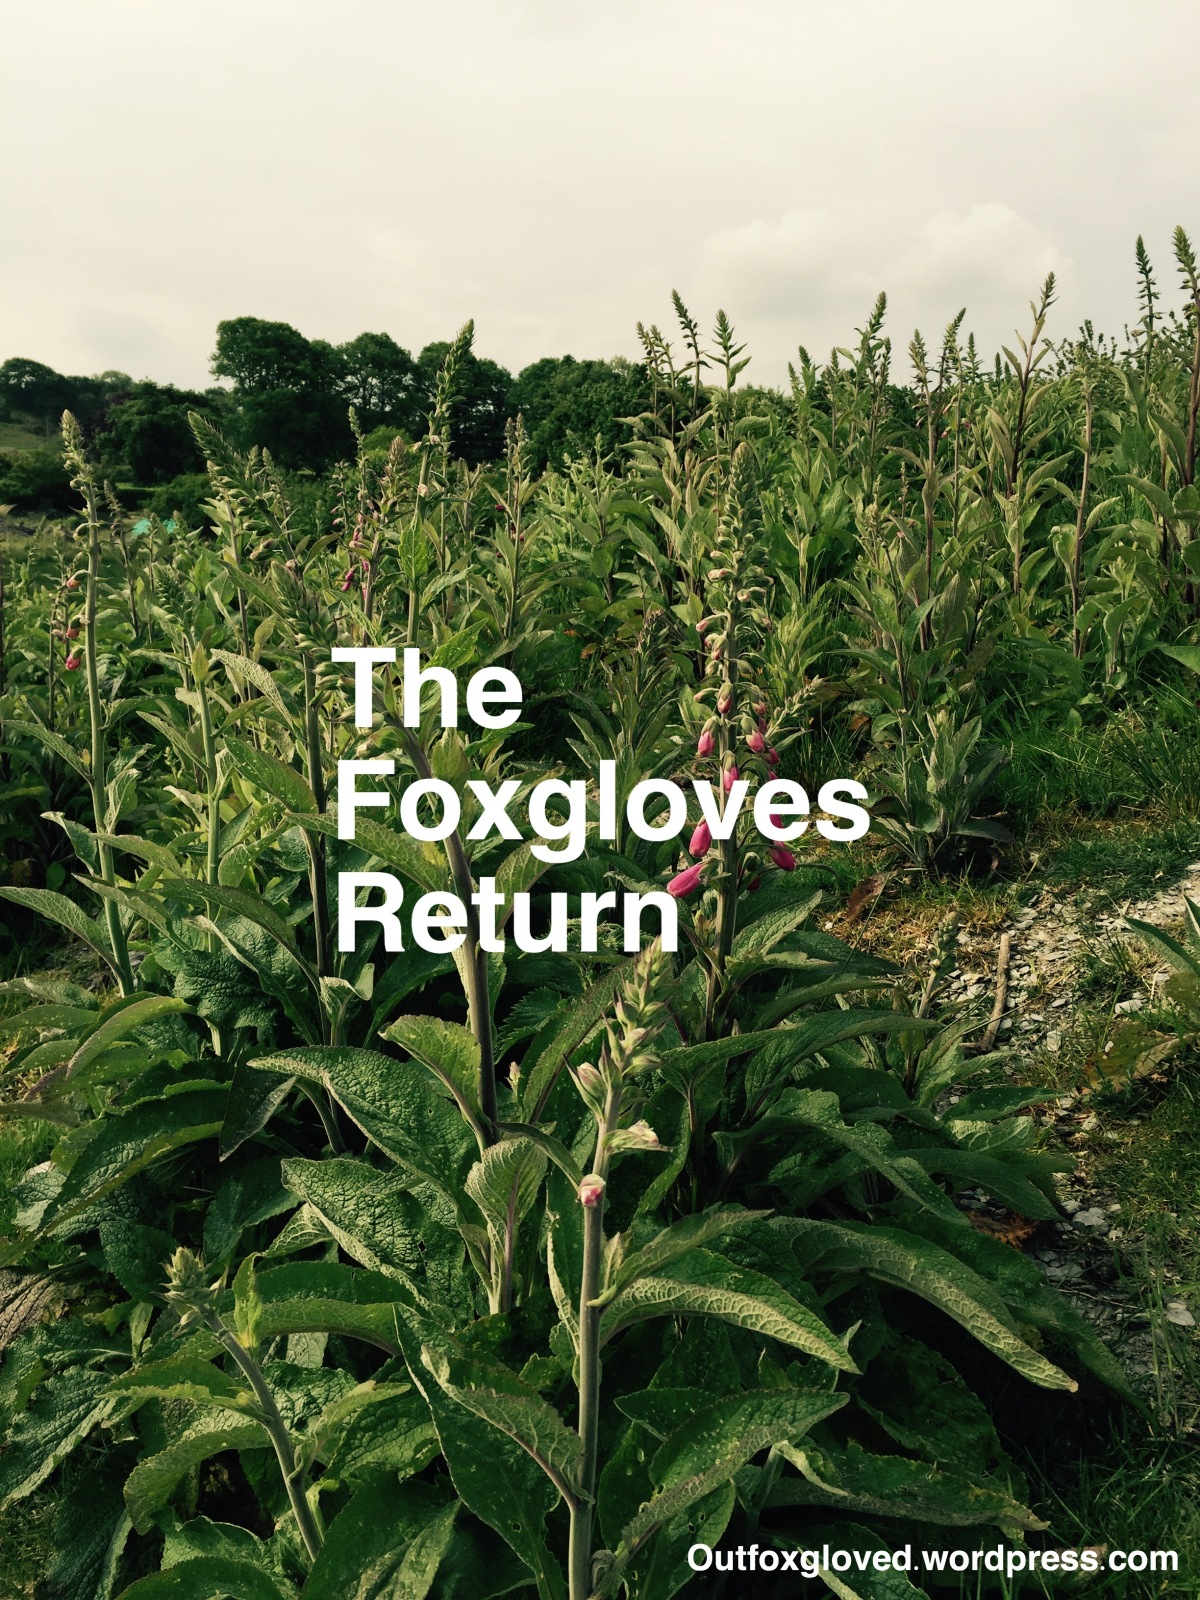 The Foxgloves Return